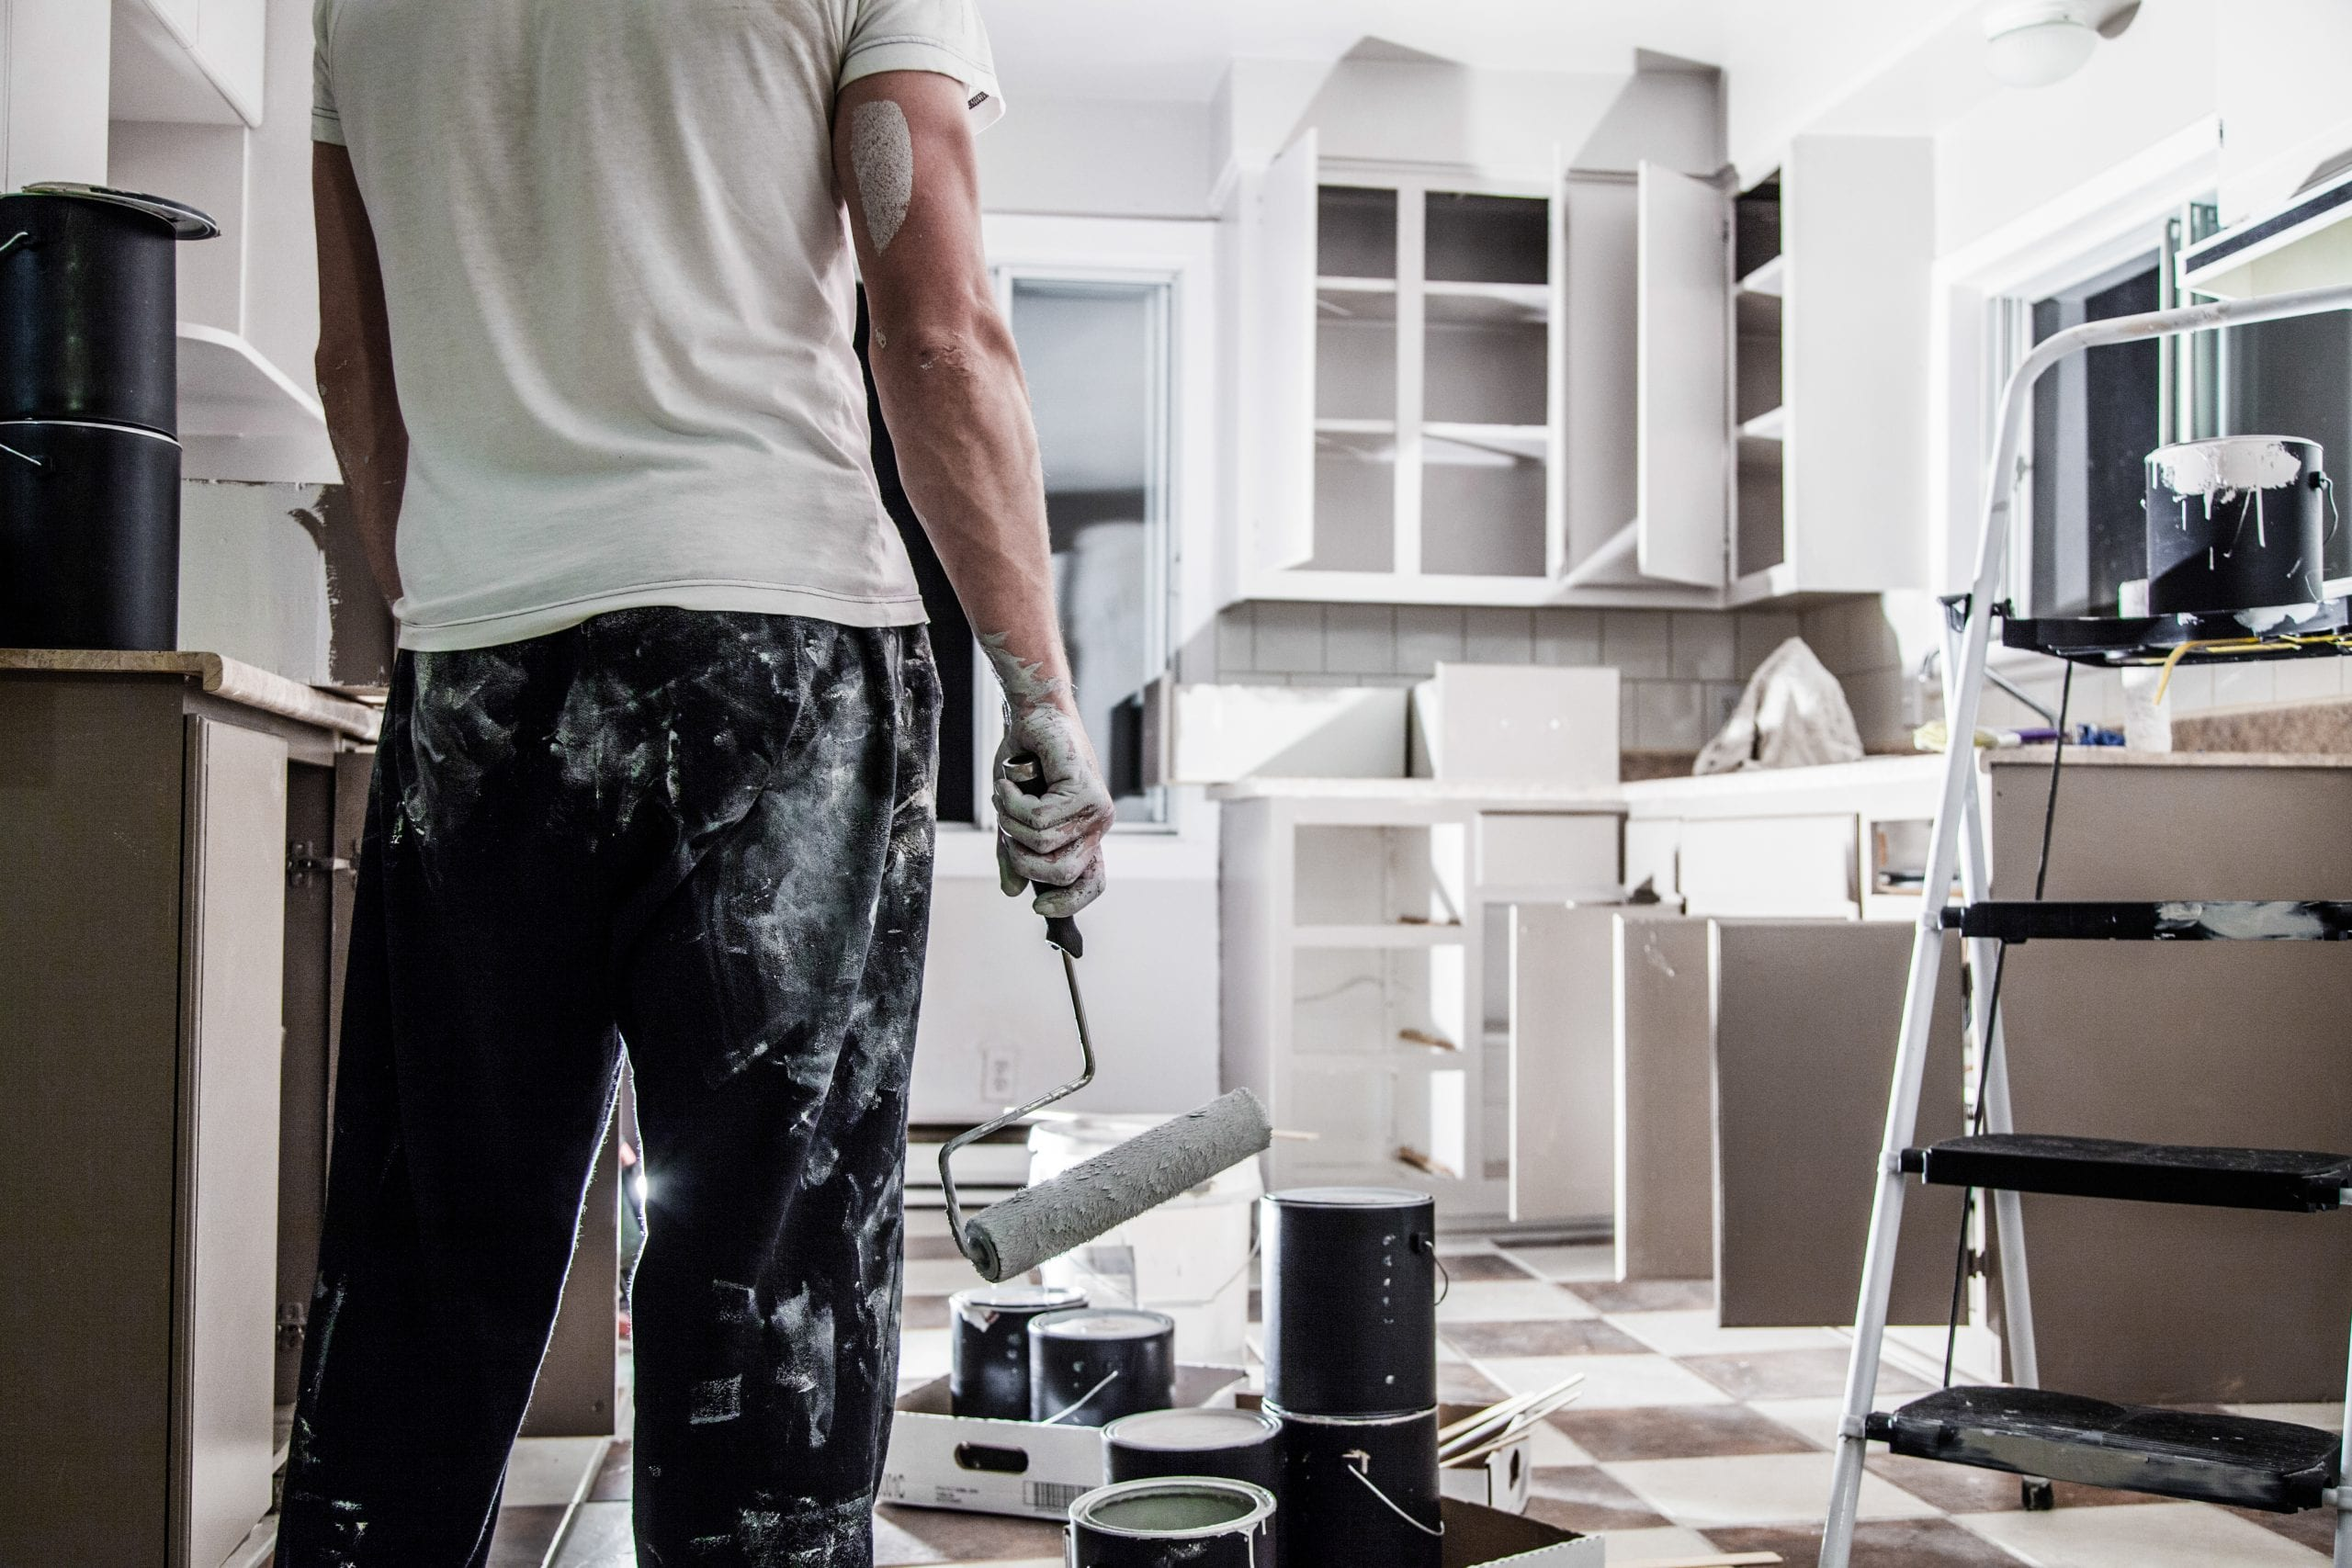 Man holding paint roller in kitchen